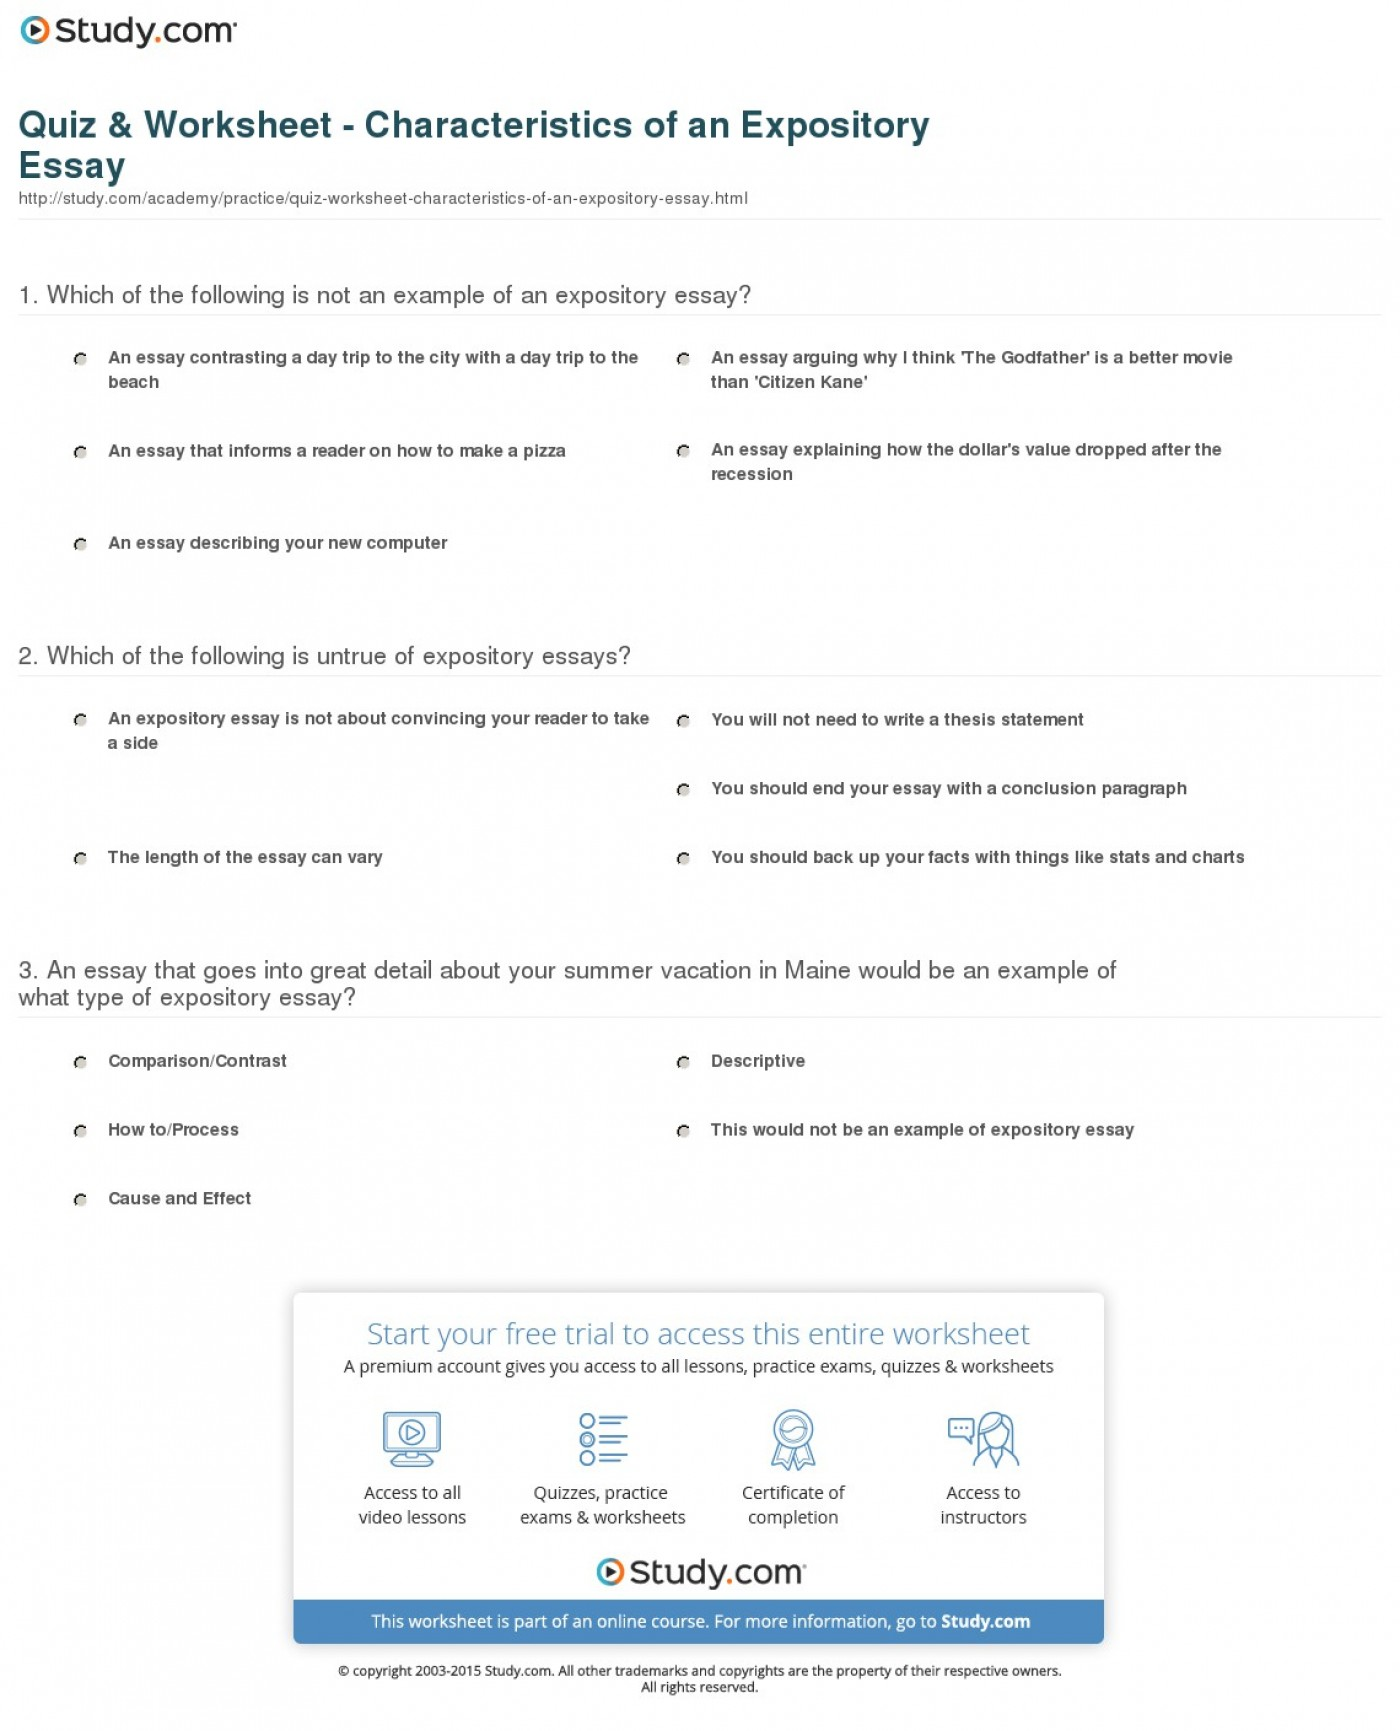 016 Expository Essay Format Quiz Worksheet Characteristics Of An Fascinating Mla Example Introduction Examples Sample Apa 1400